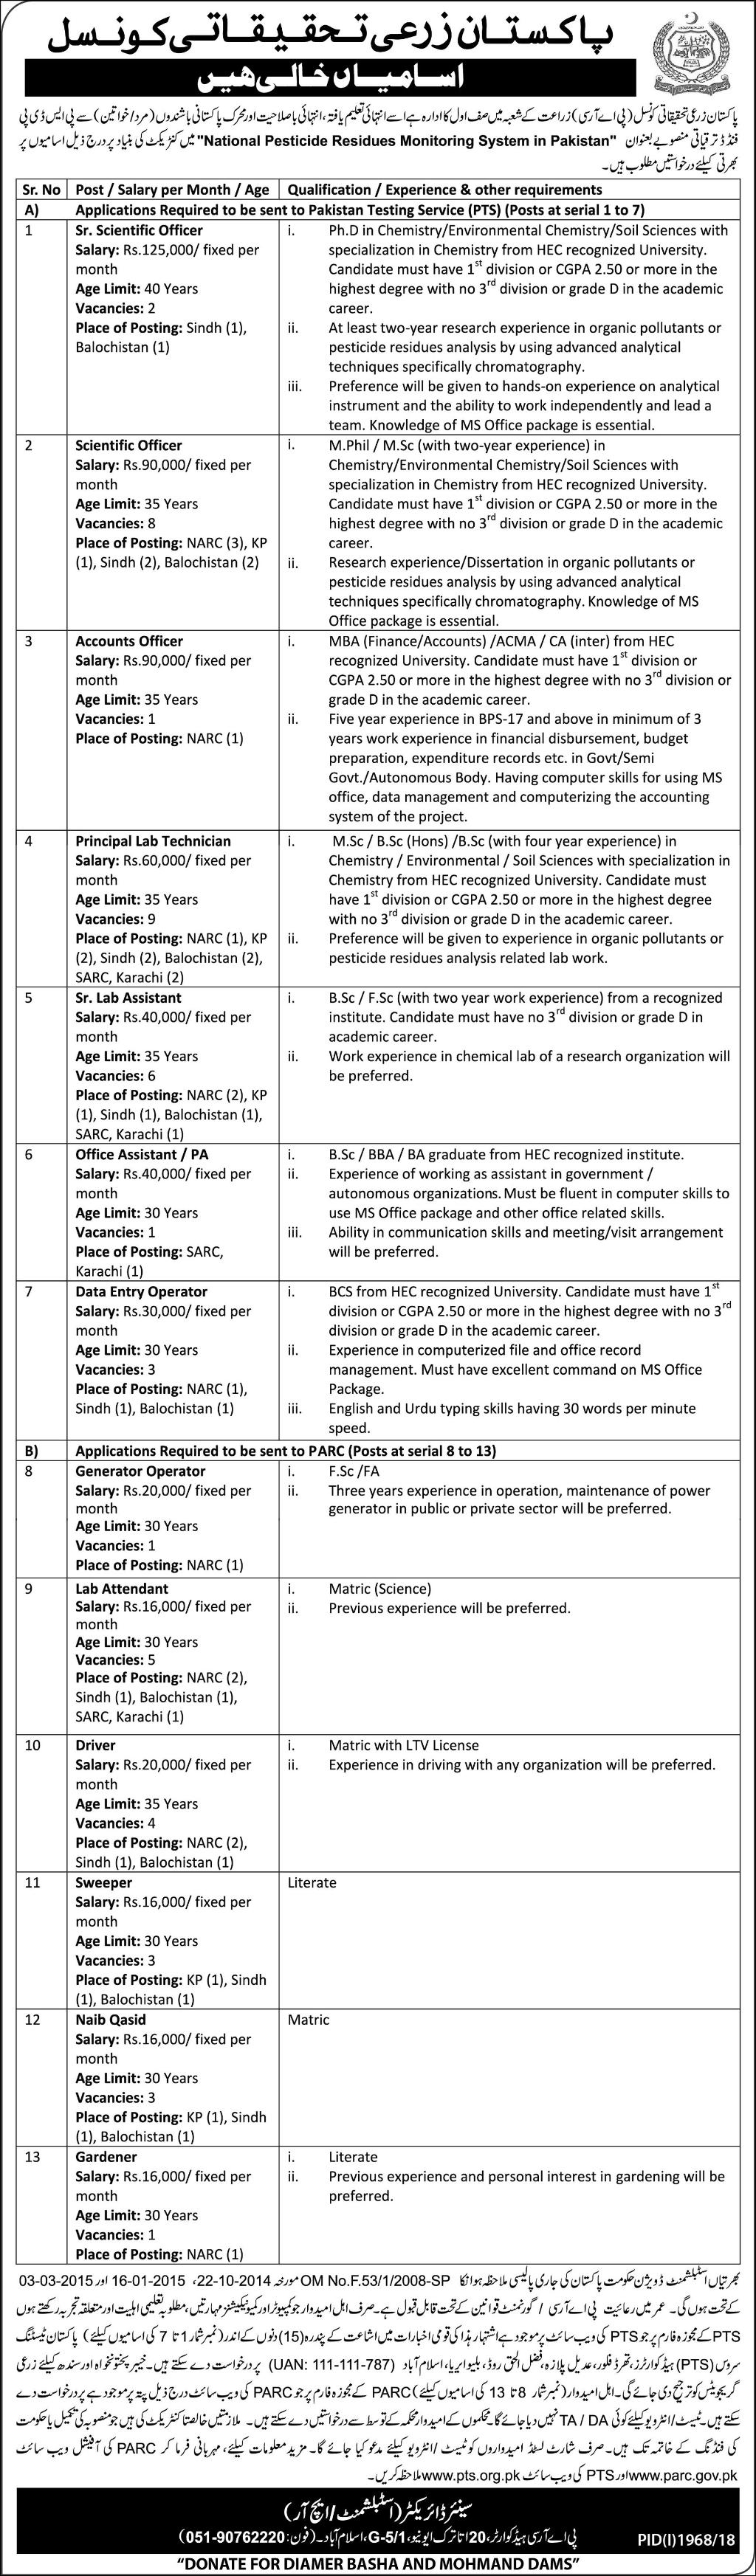 Pakistan Agricultural Research Council Jobs Latest 2018